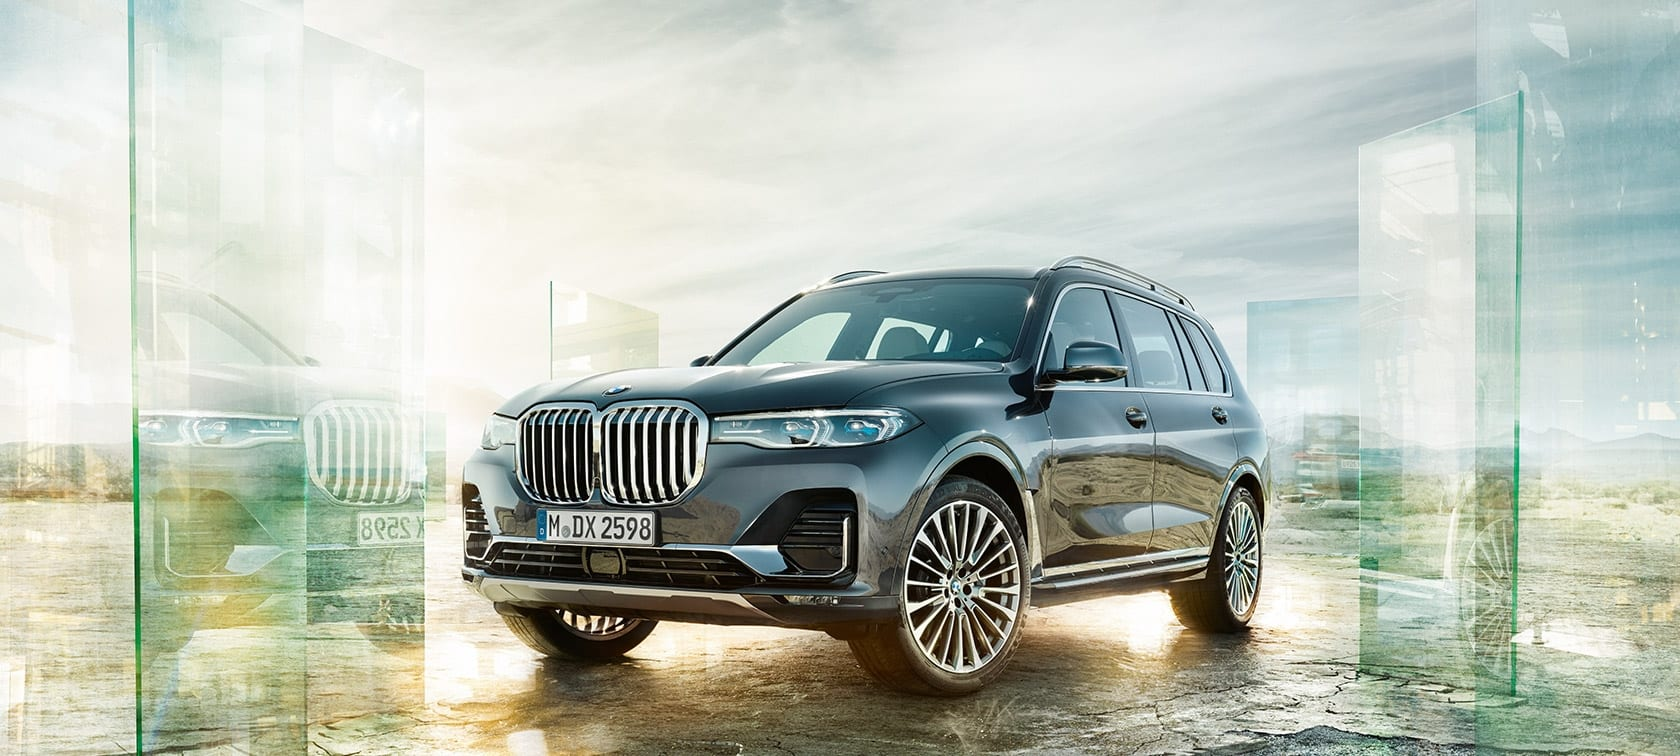 2019 Bmw X7 M50d Car 2019 Bmw X7 Car Price Engine Full